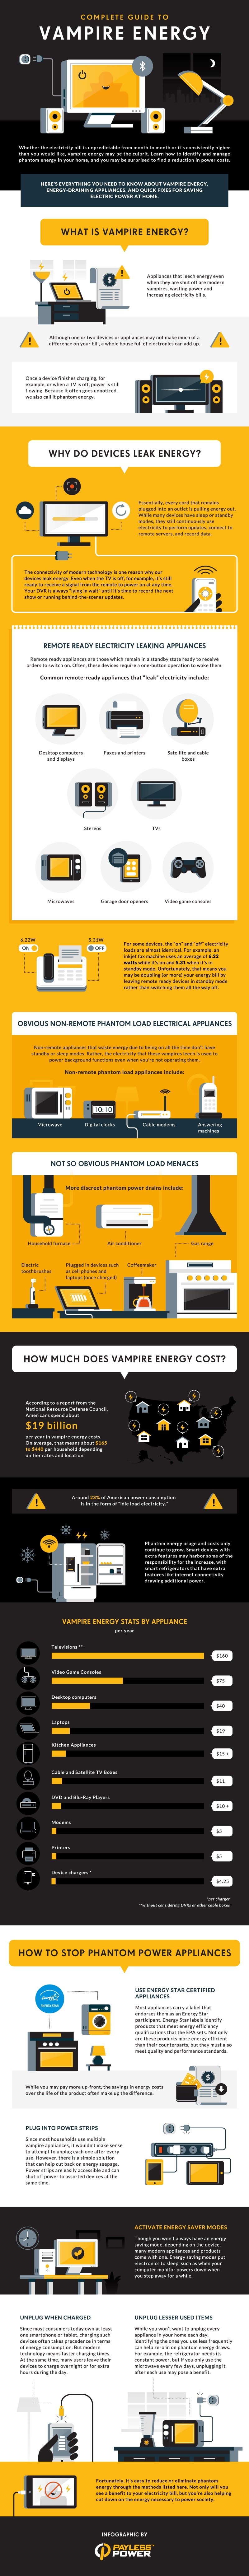 Guide to Vampire Energy: Quick Fixes for Saving Electricity at Home [Infographic]